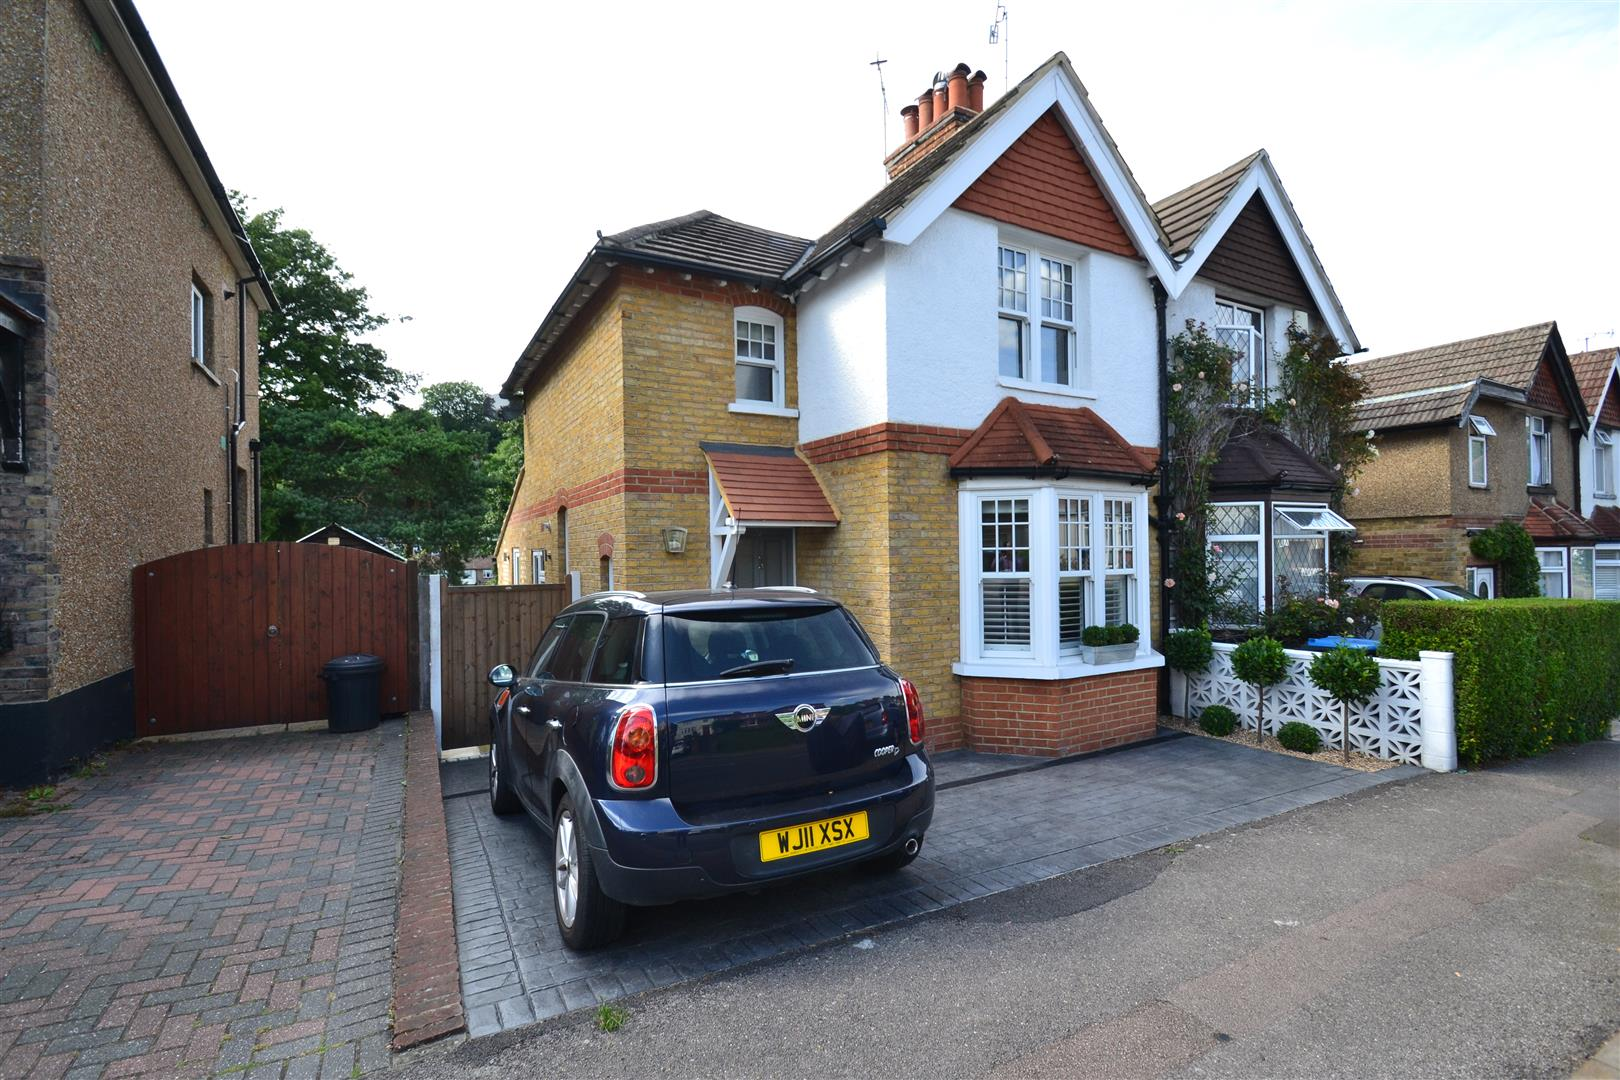 3 Bedrooms Semi Detached House for sale in Croydon Road, Caterham